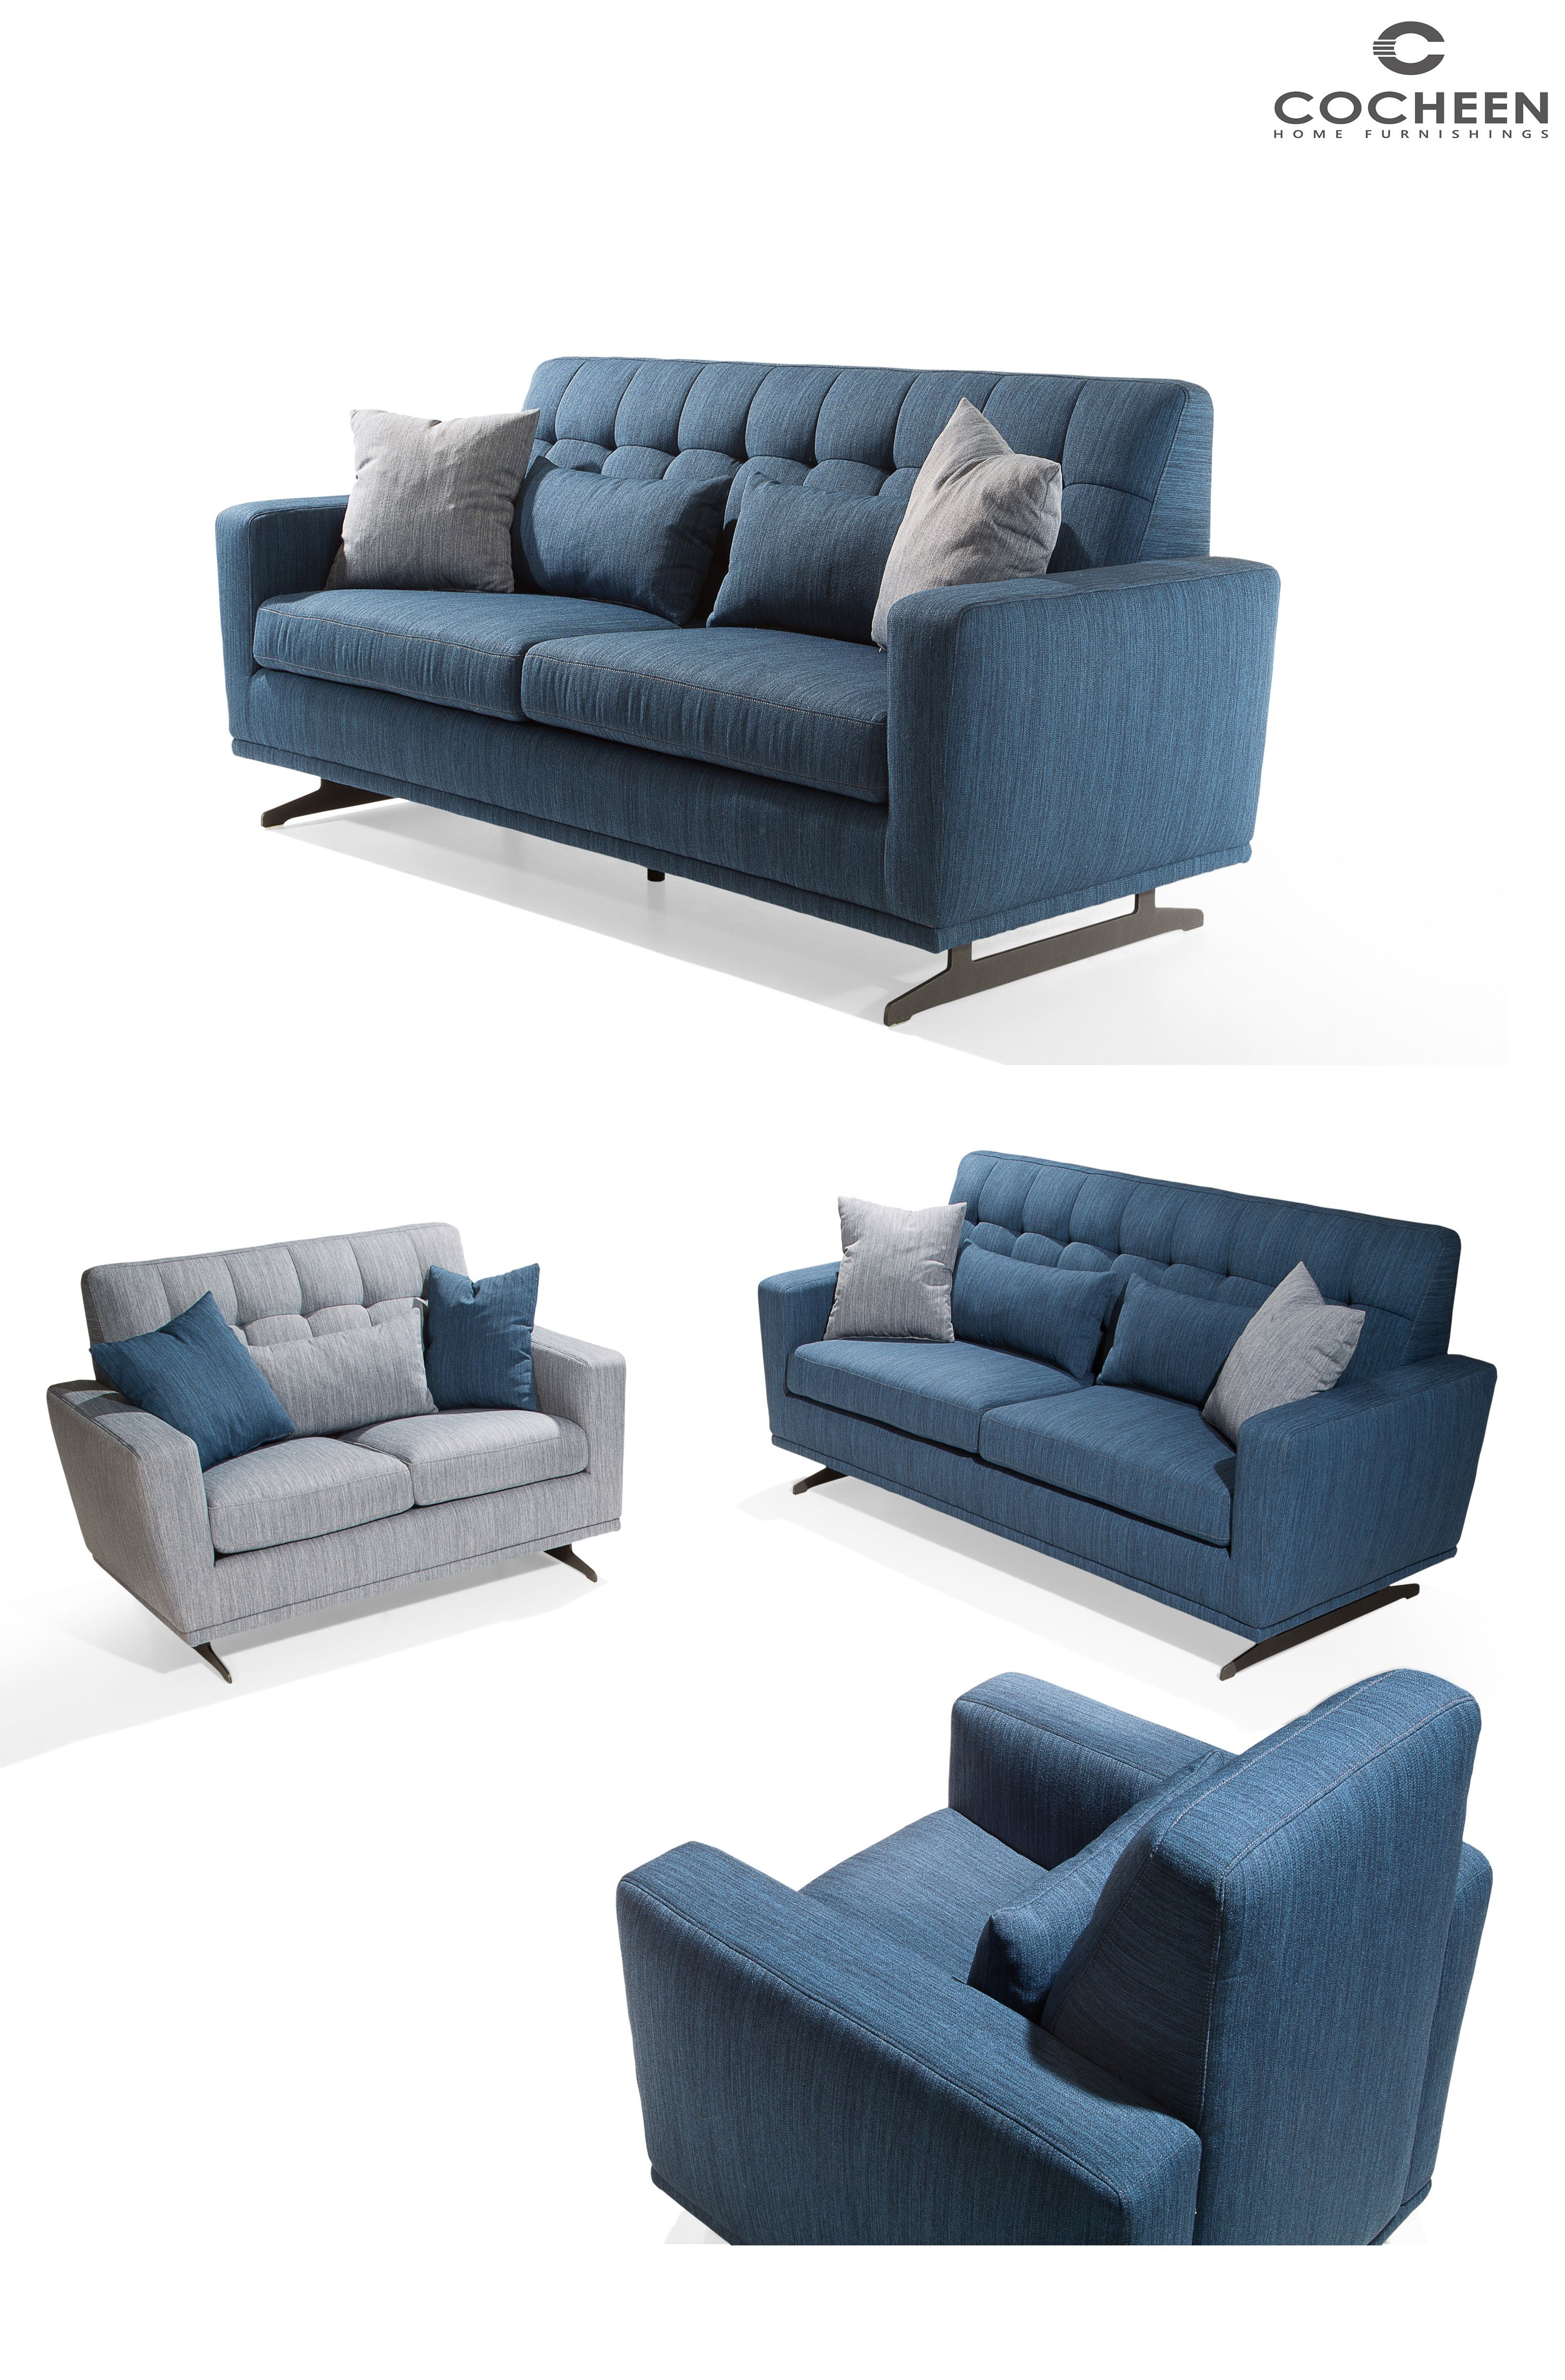 good quality sectional sofas cleaning semi aniline leather sofa best sell china supplier luxury big furniture